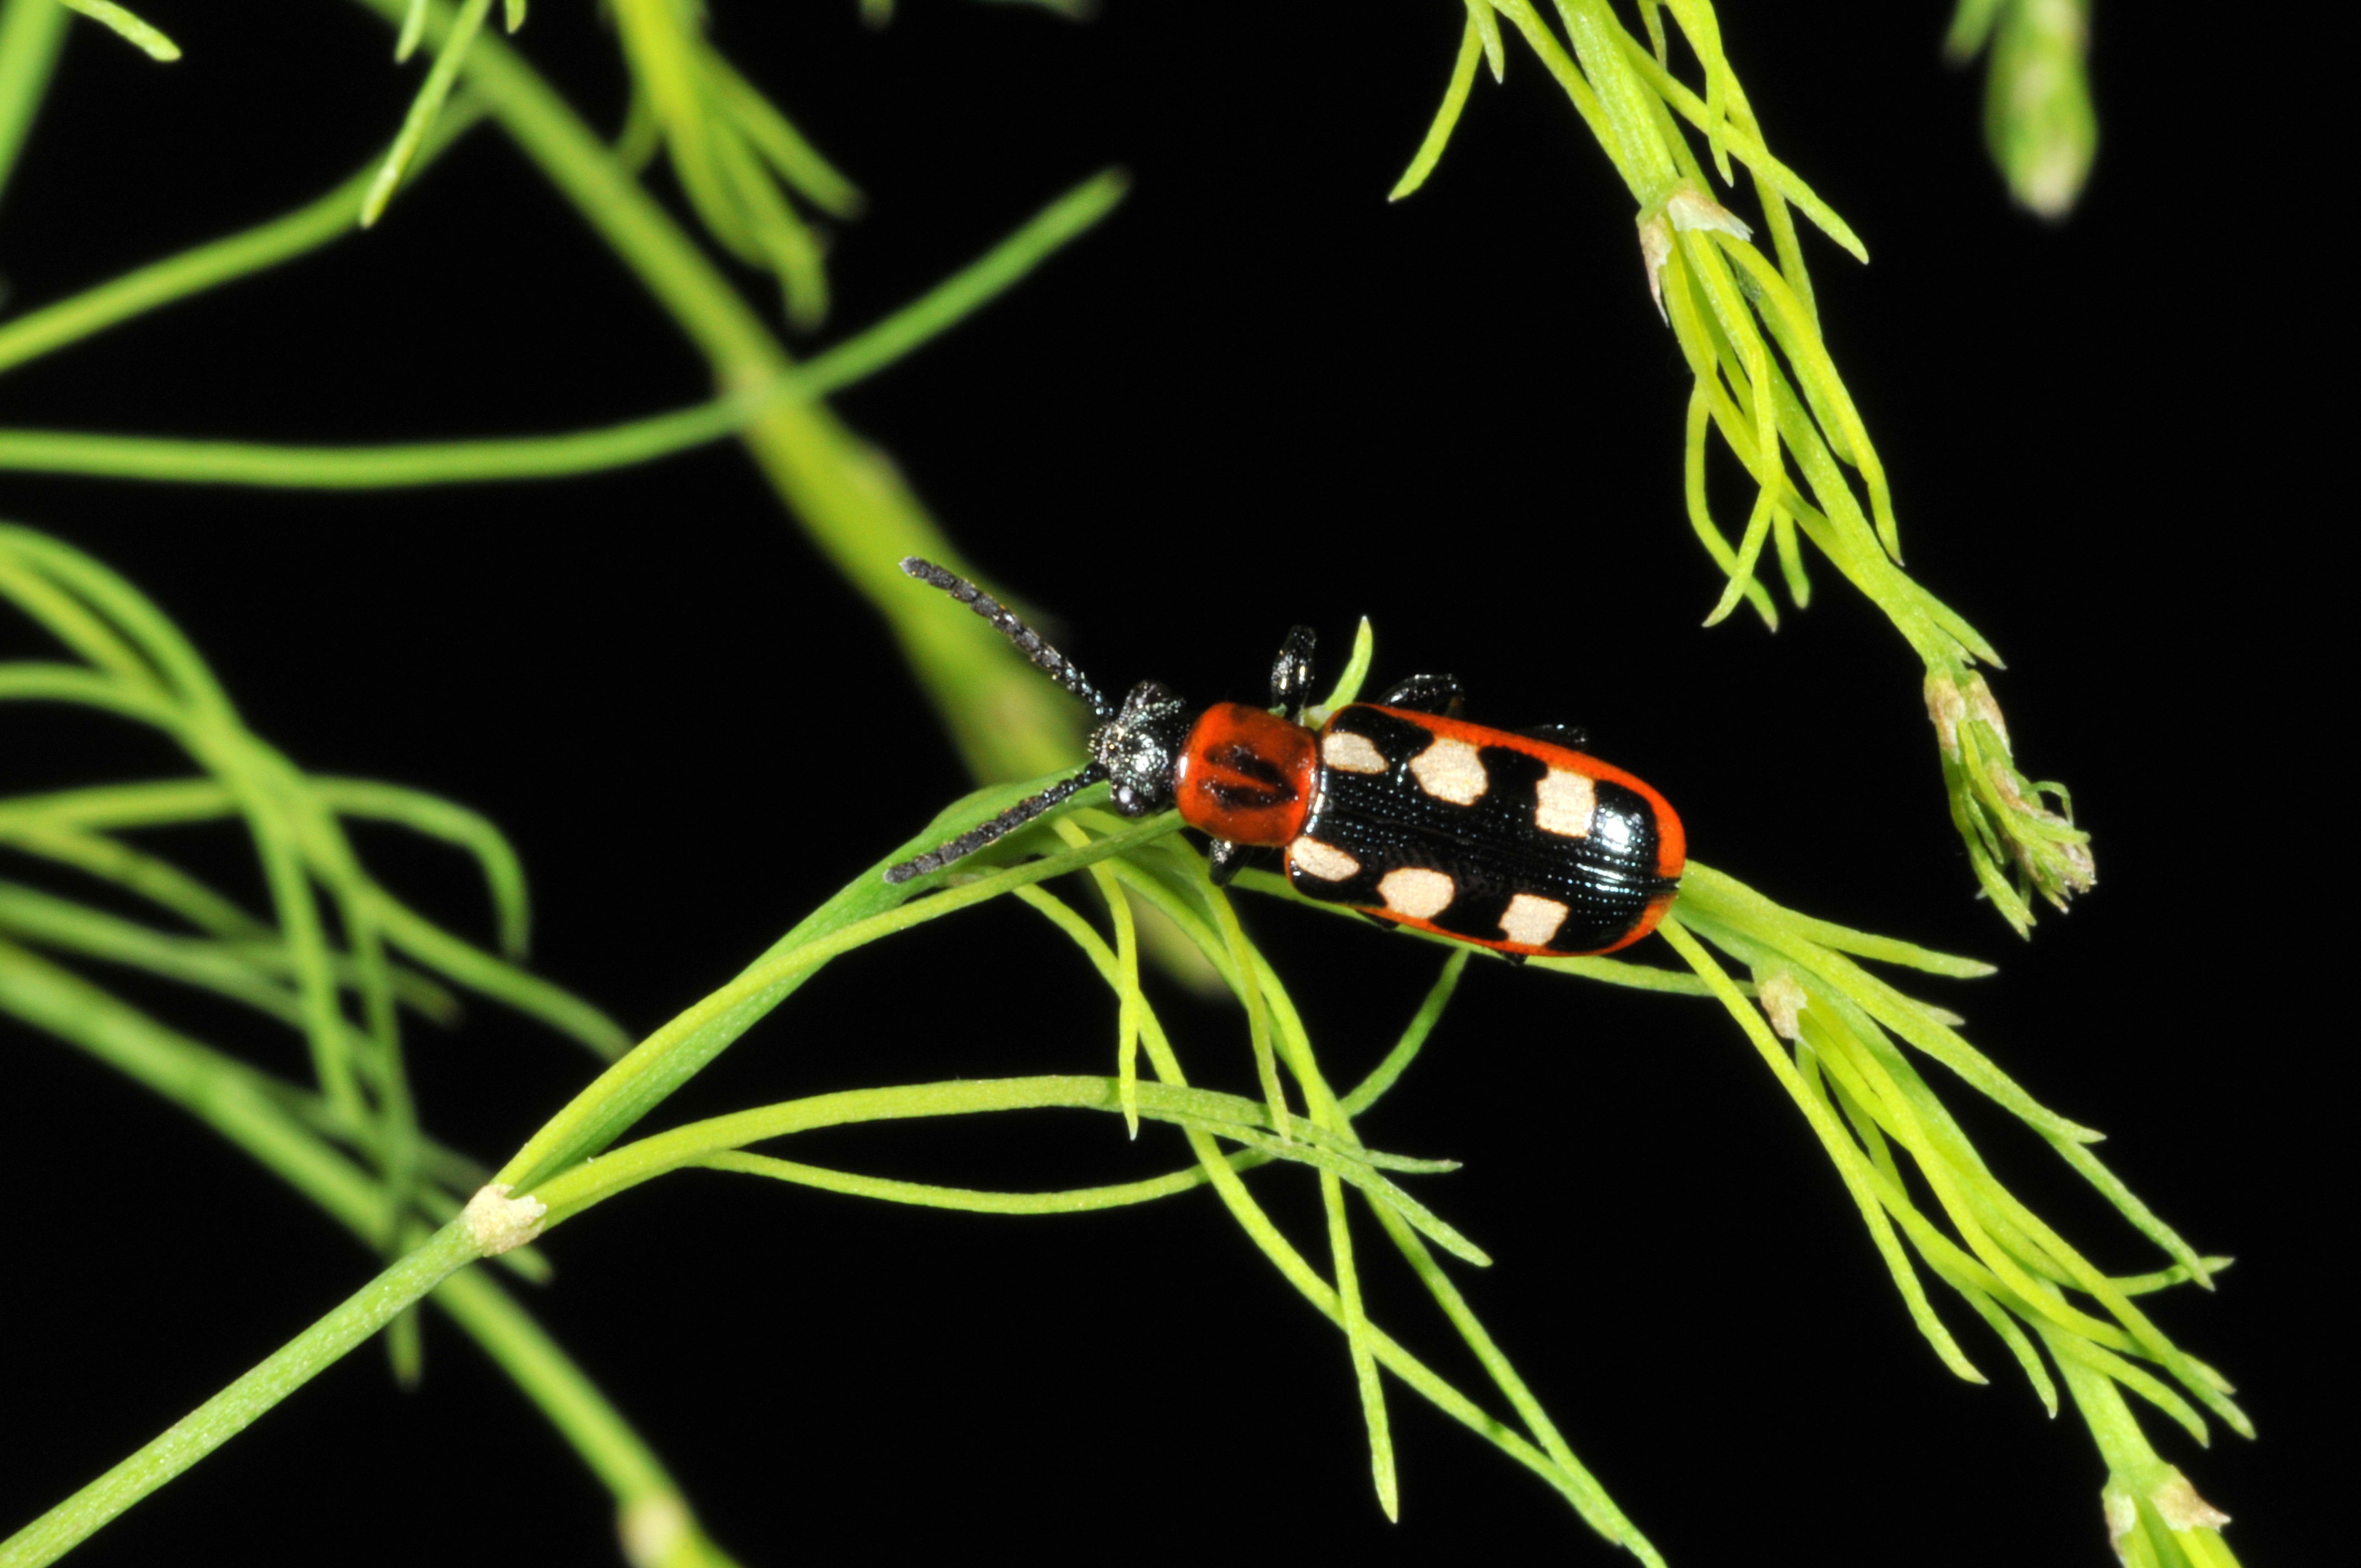 Asparagus Beetle Control: Managing Insects In The Home Vegetable Gardens